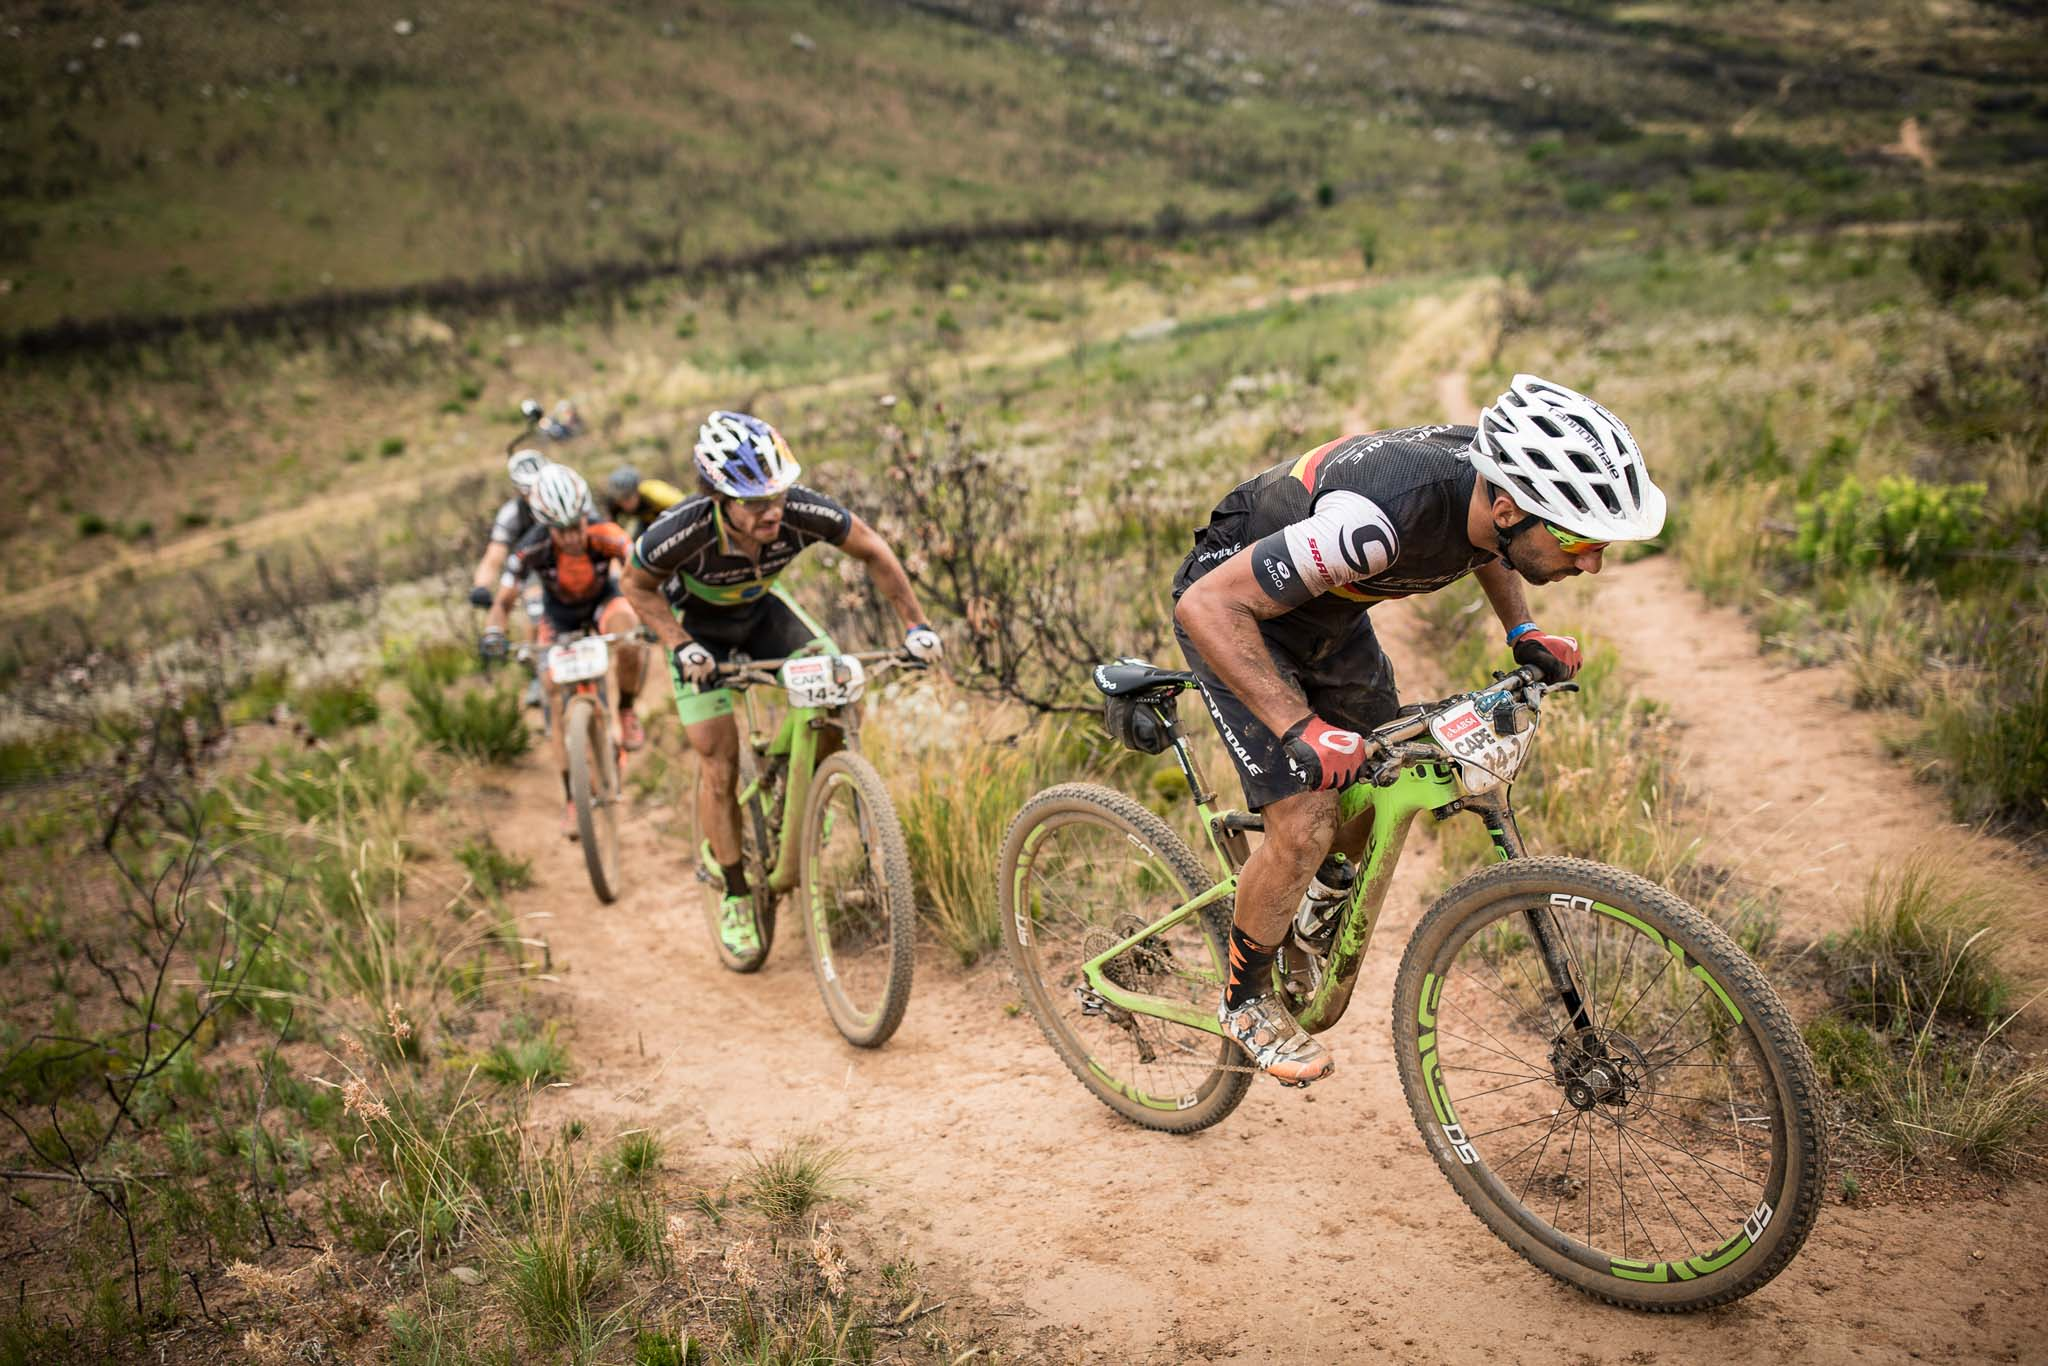 Manuel Fumic and Henrique Avancini of Team Cannondale Factory Racing during stage 4 of the 2016 Absa Cape Epic Mountain Bike stage race from the Cape Peninsula University of Technology in Wellington, South Africa on the 17th March 2016 Photo by Nick Muzik/Cape Epic/SPORTZPICS PLEASE ENSURE THE APPROPRIATE CREDIT IS GIVEN TO THE PHOTOGRAPHER AND SPORTZPICS ALONG WITH THE ABSA CAPE EPIC ace2016